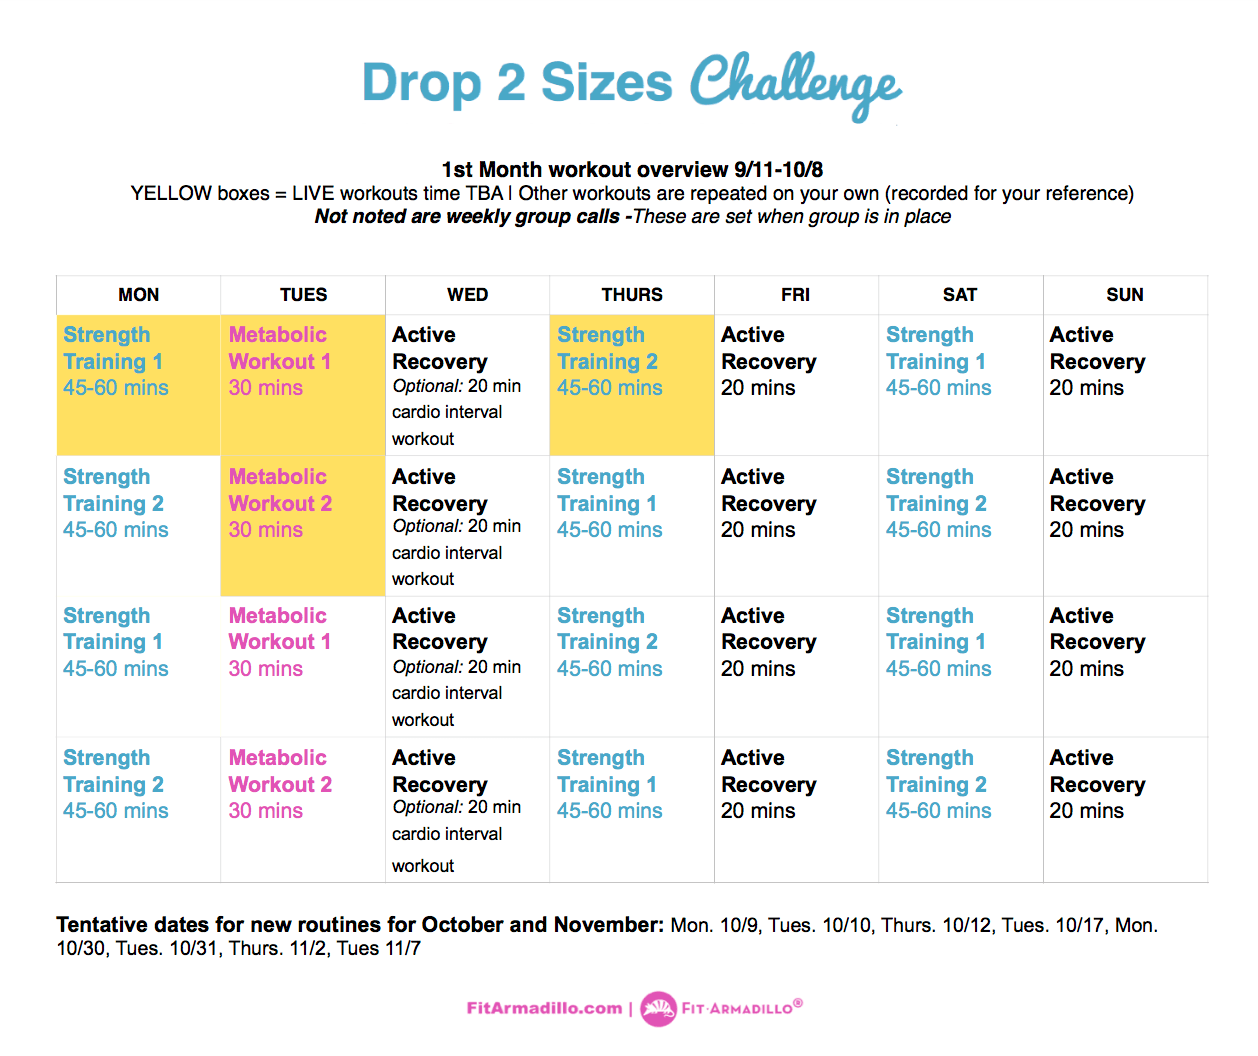 Drop 2 Sizes Fitness Challenge Online Fitness Program